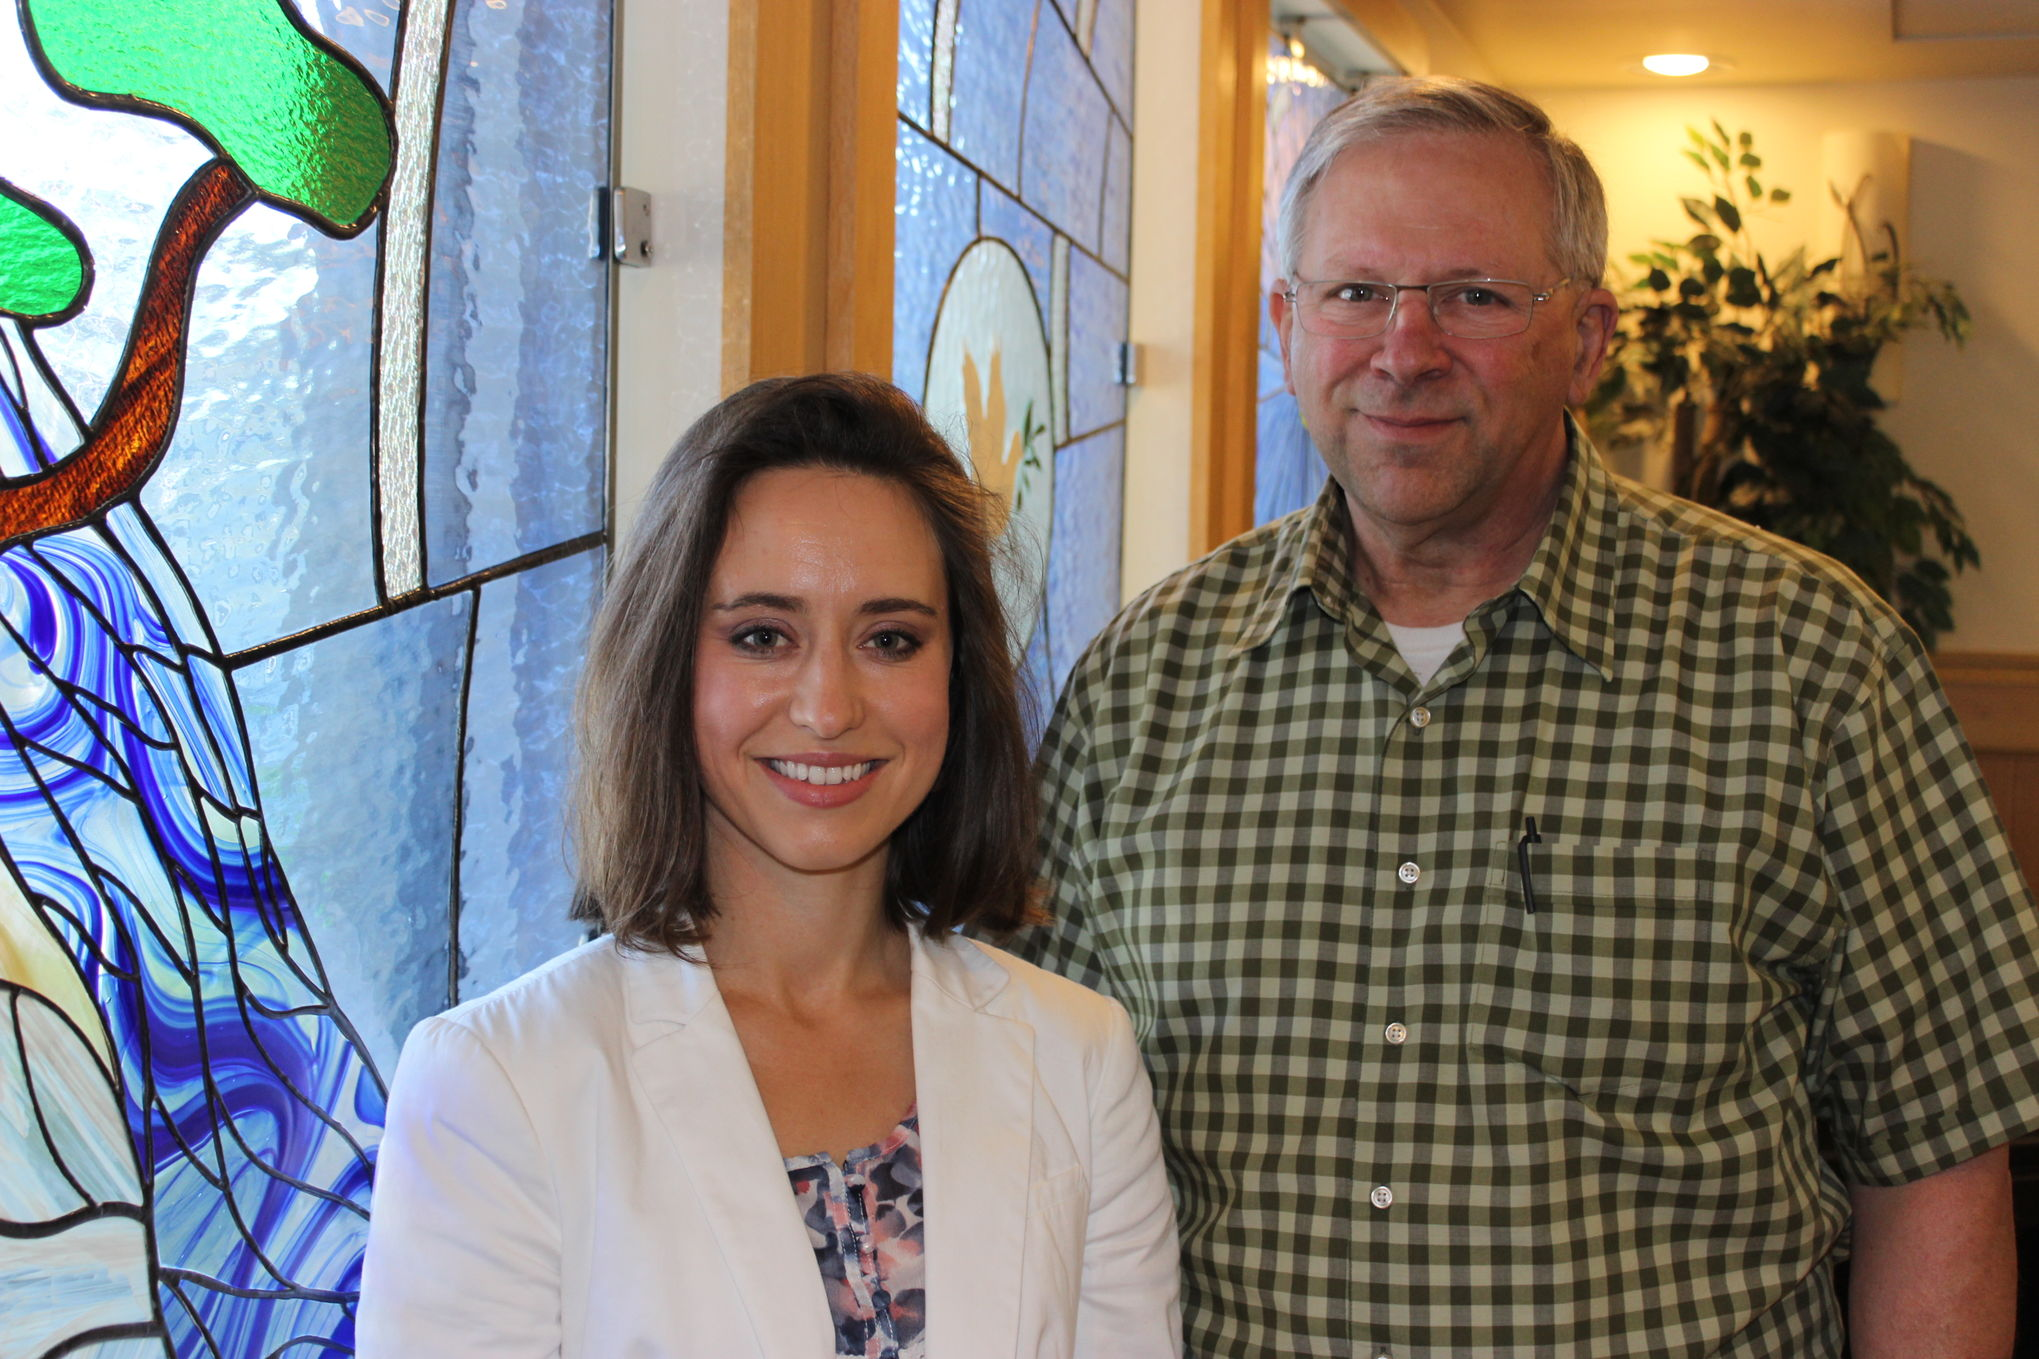 Lydia Summerville, incoming chaplain of Bethesda Place and Bethesda Regional Health Centre, and retiring chaplain Larry Hirst, are seen in the Bethesda Place chapel. The two will work alongside one another for the month of June.